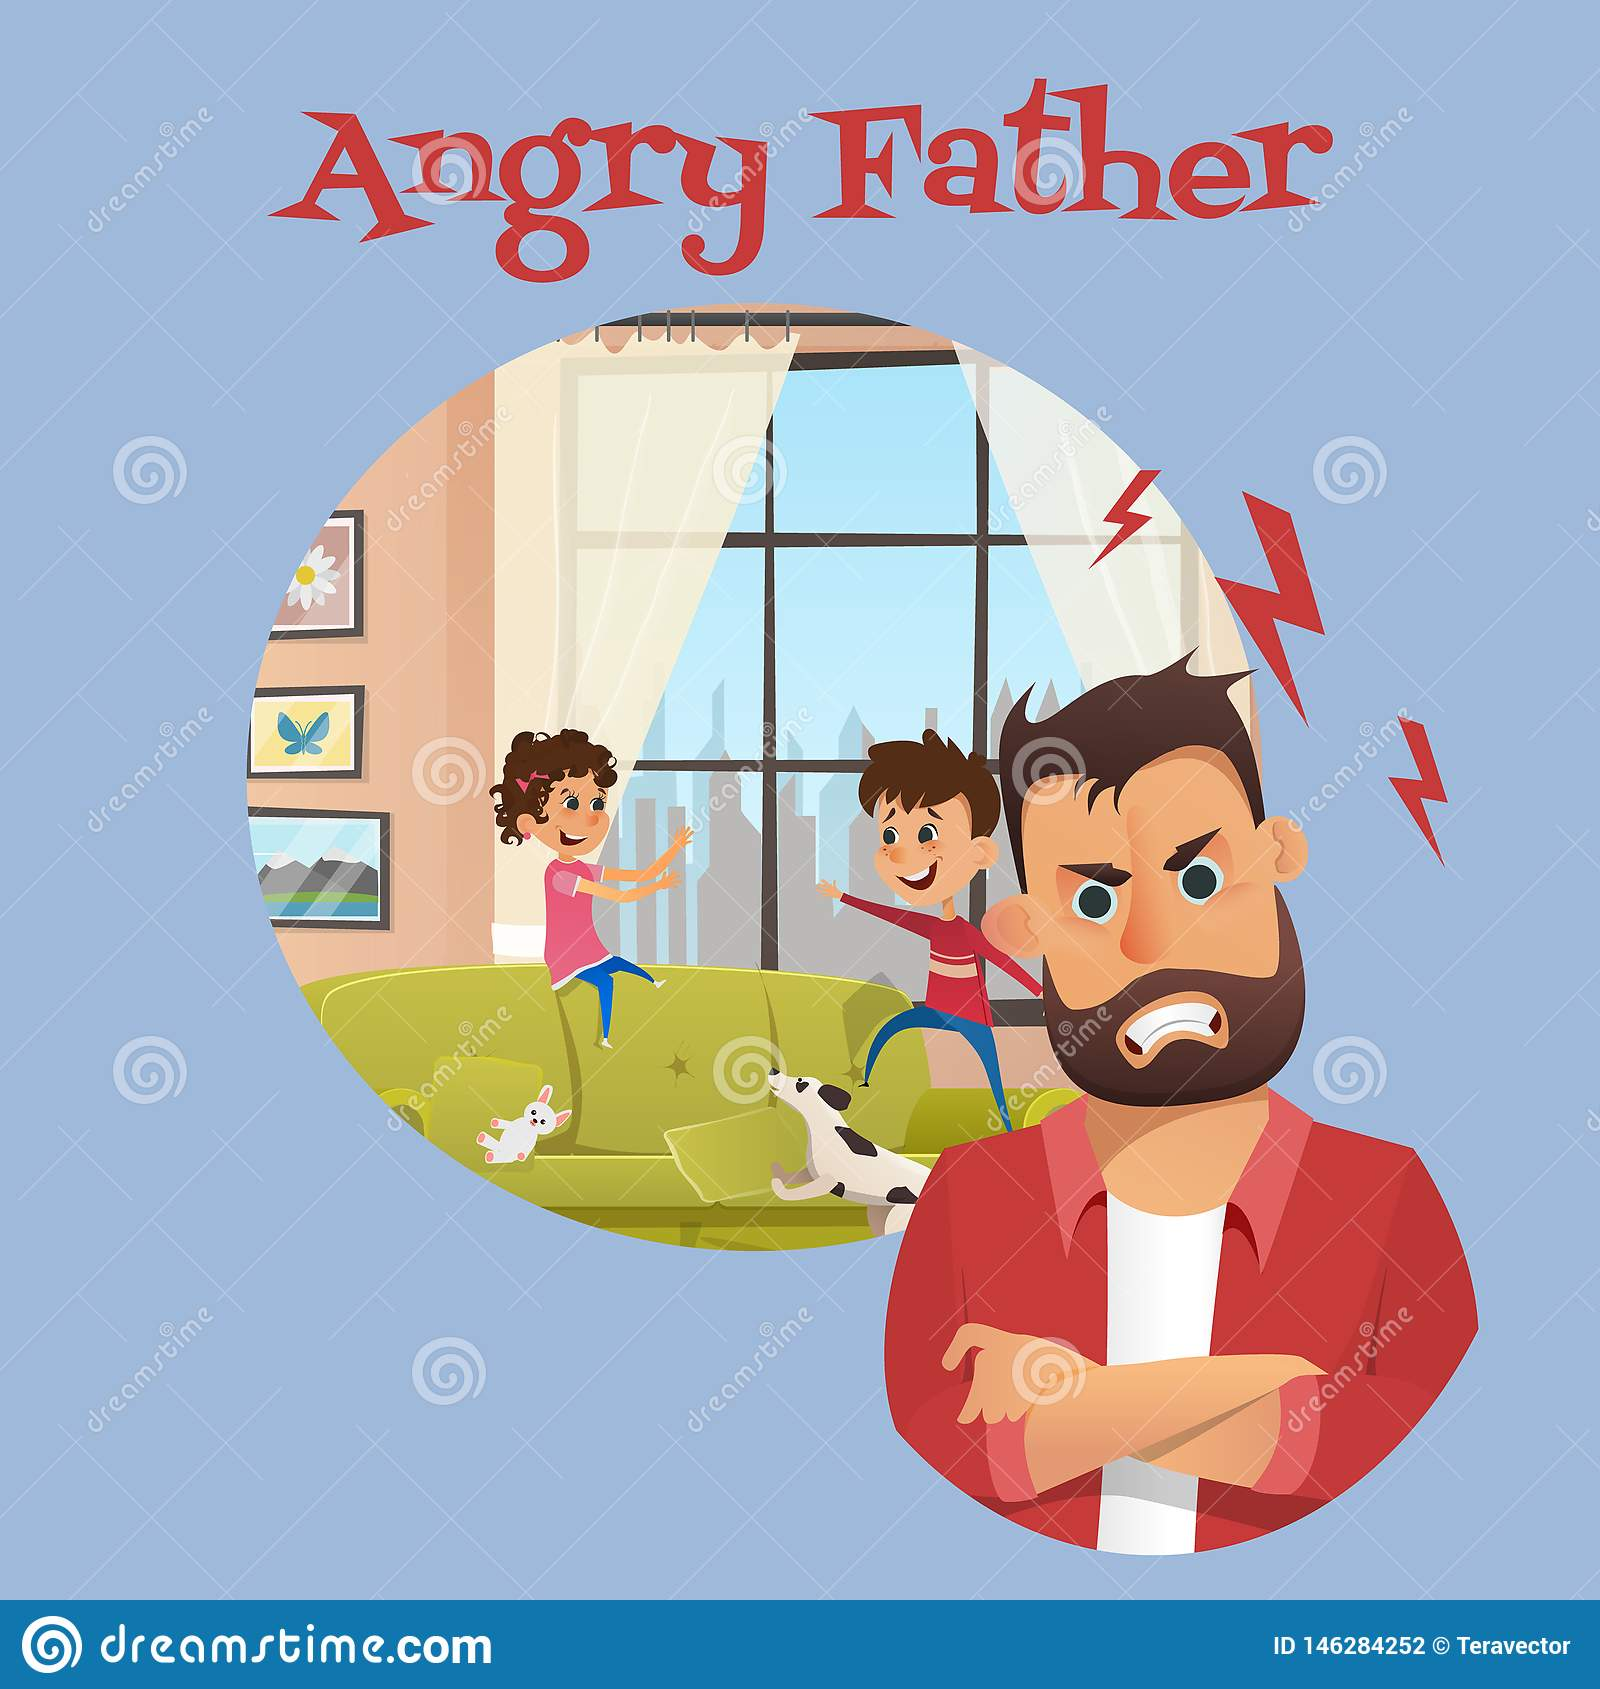 Angry Dad Broken Dishes.Angry Father Stock Illustrations 1 170 Angry Father Stock Illustrations Vectors Clipart Dreamstime